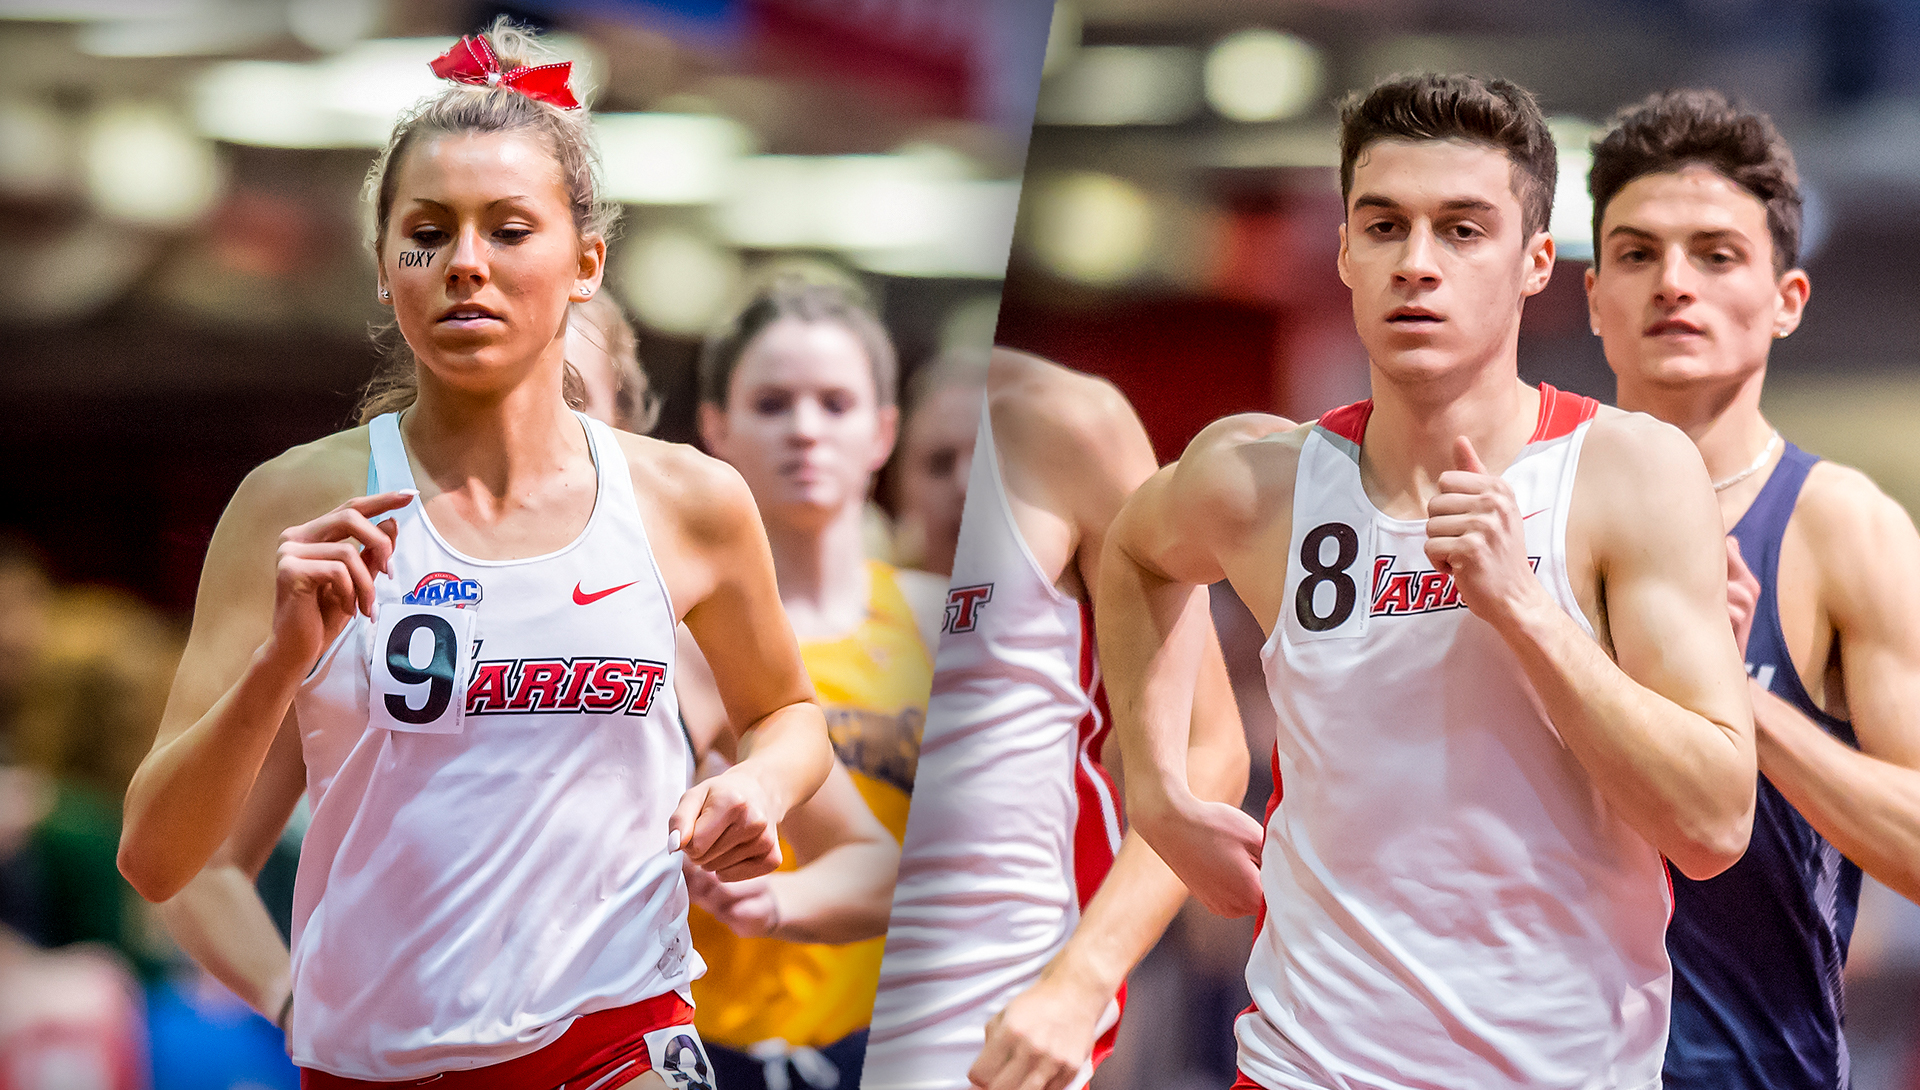 Track to Race at Bryan Clay Invitational